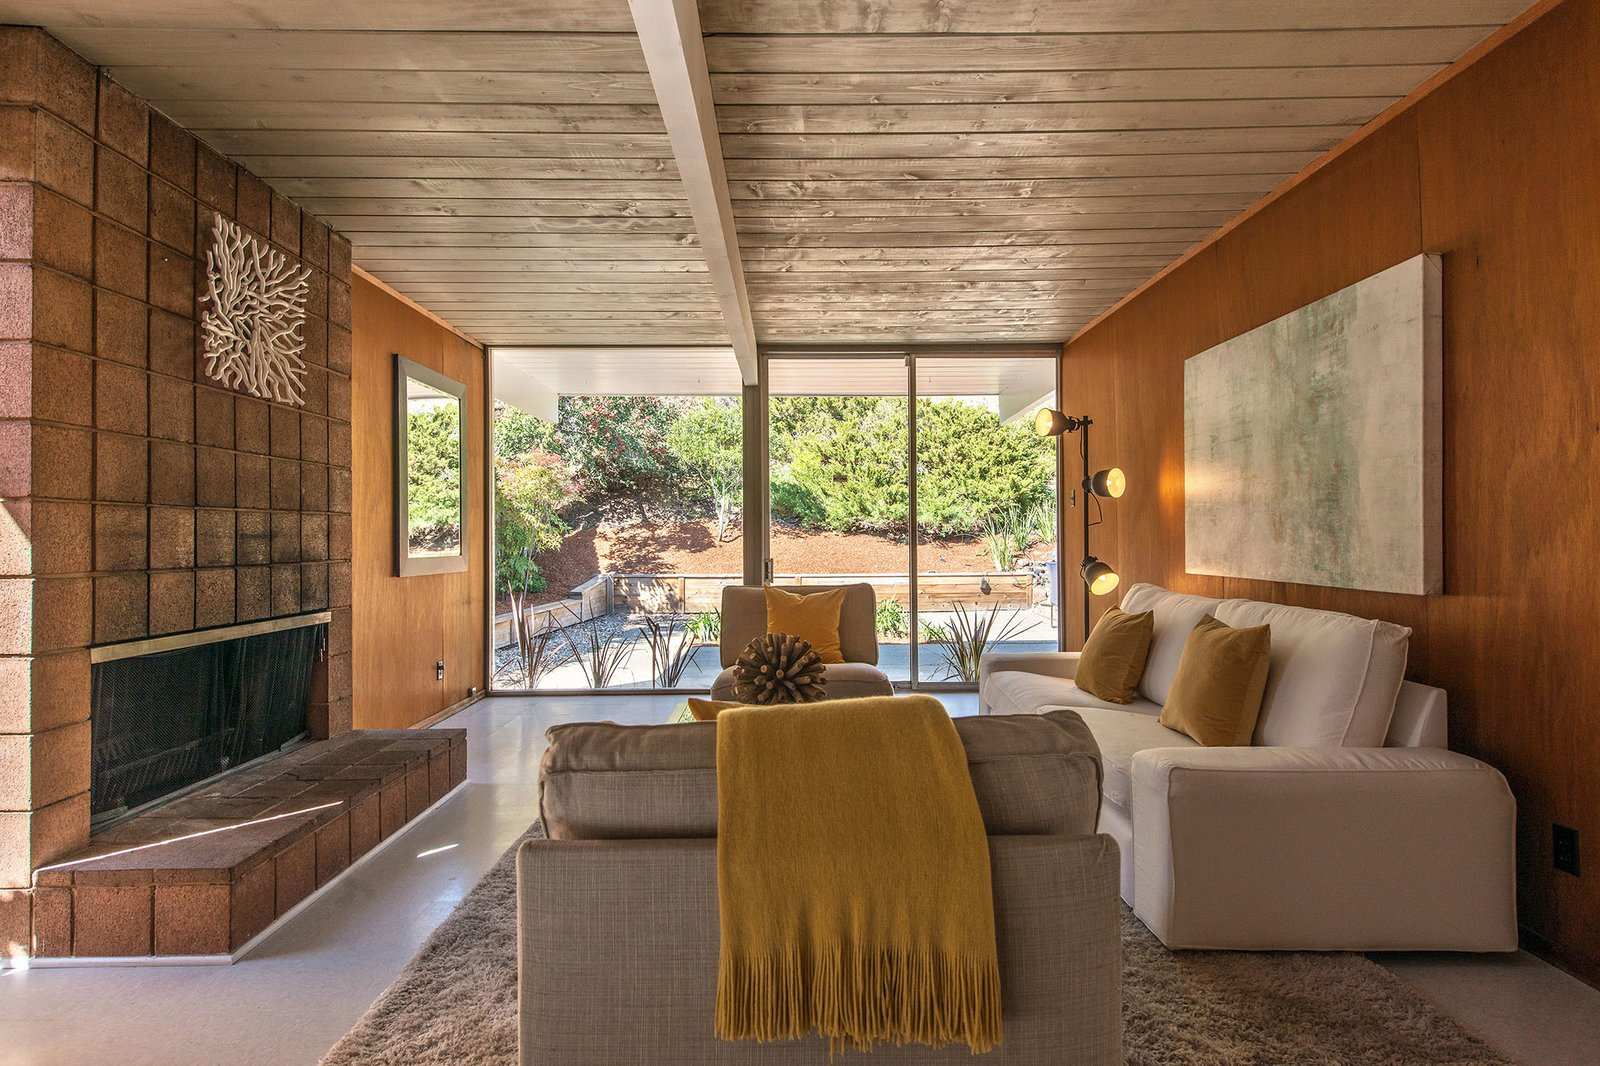 A more formal open living room features a fireplace.